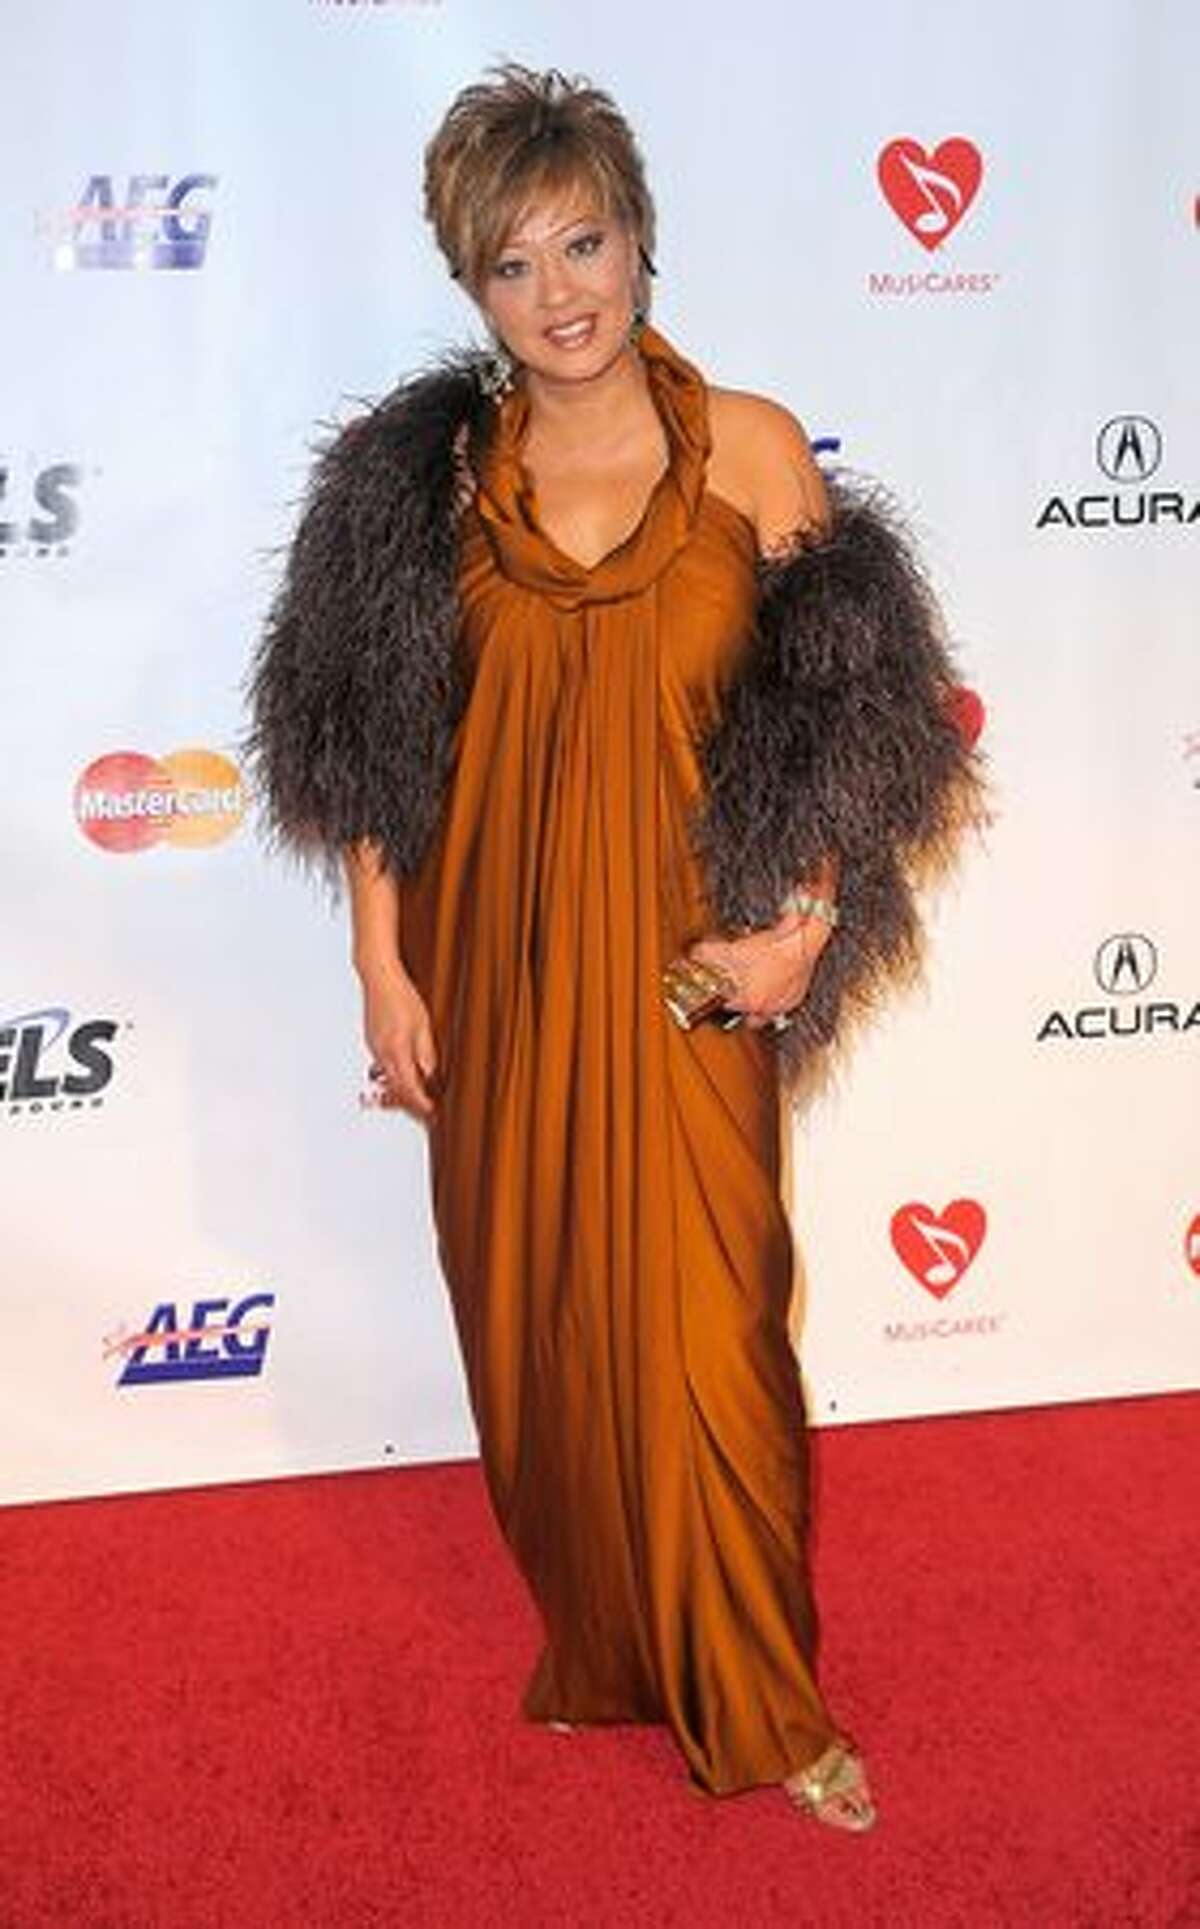 Singer Rosalina arrives at the 2010 MusiCares Person Of The Year Tribute To Neil Young at the Los Angeles Convention Center on January 29, 2010 in Los Angeles, California.